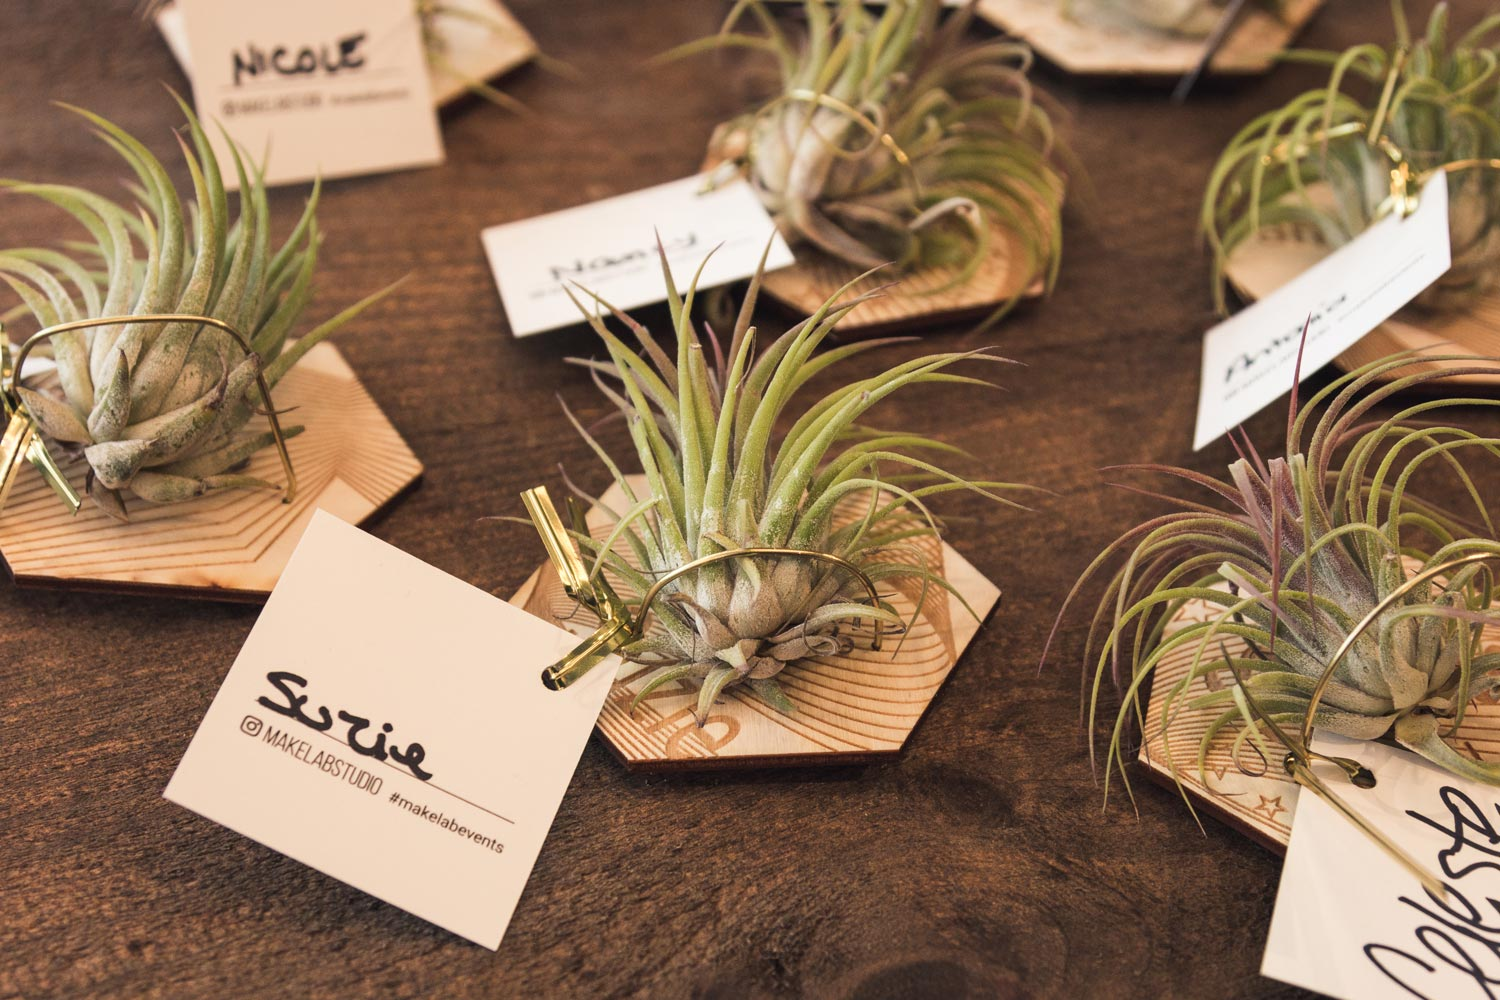 Hanging air plant holders designed by guests